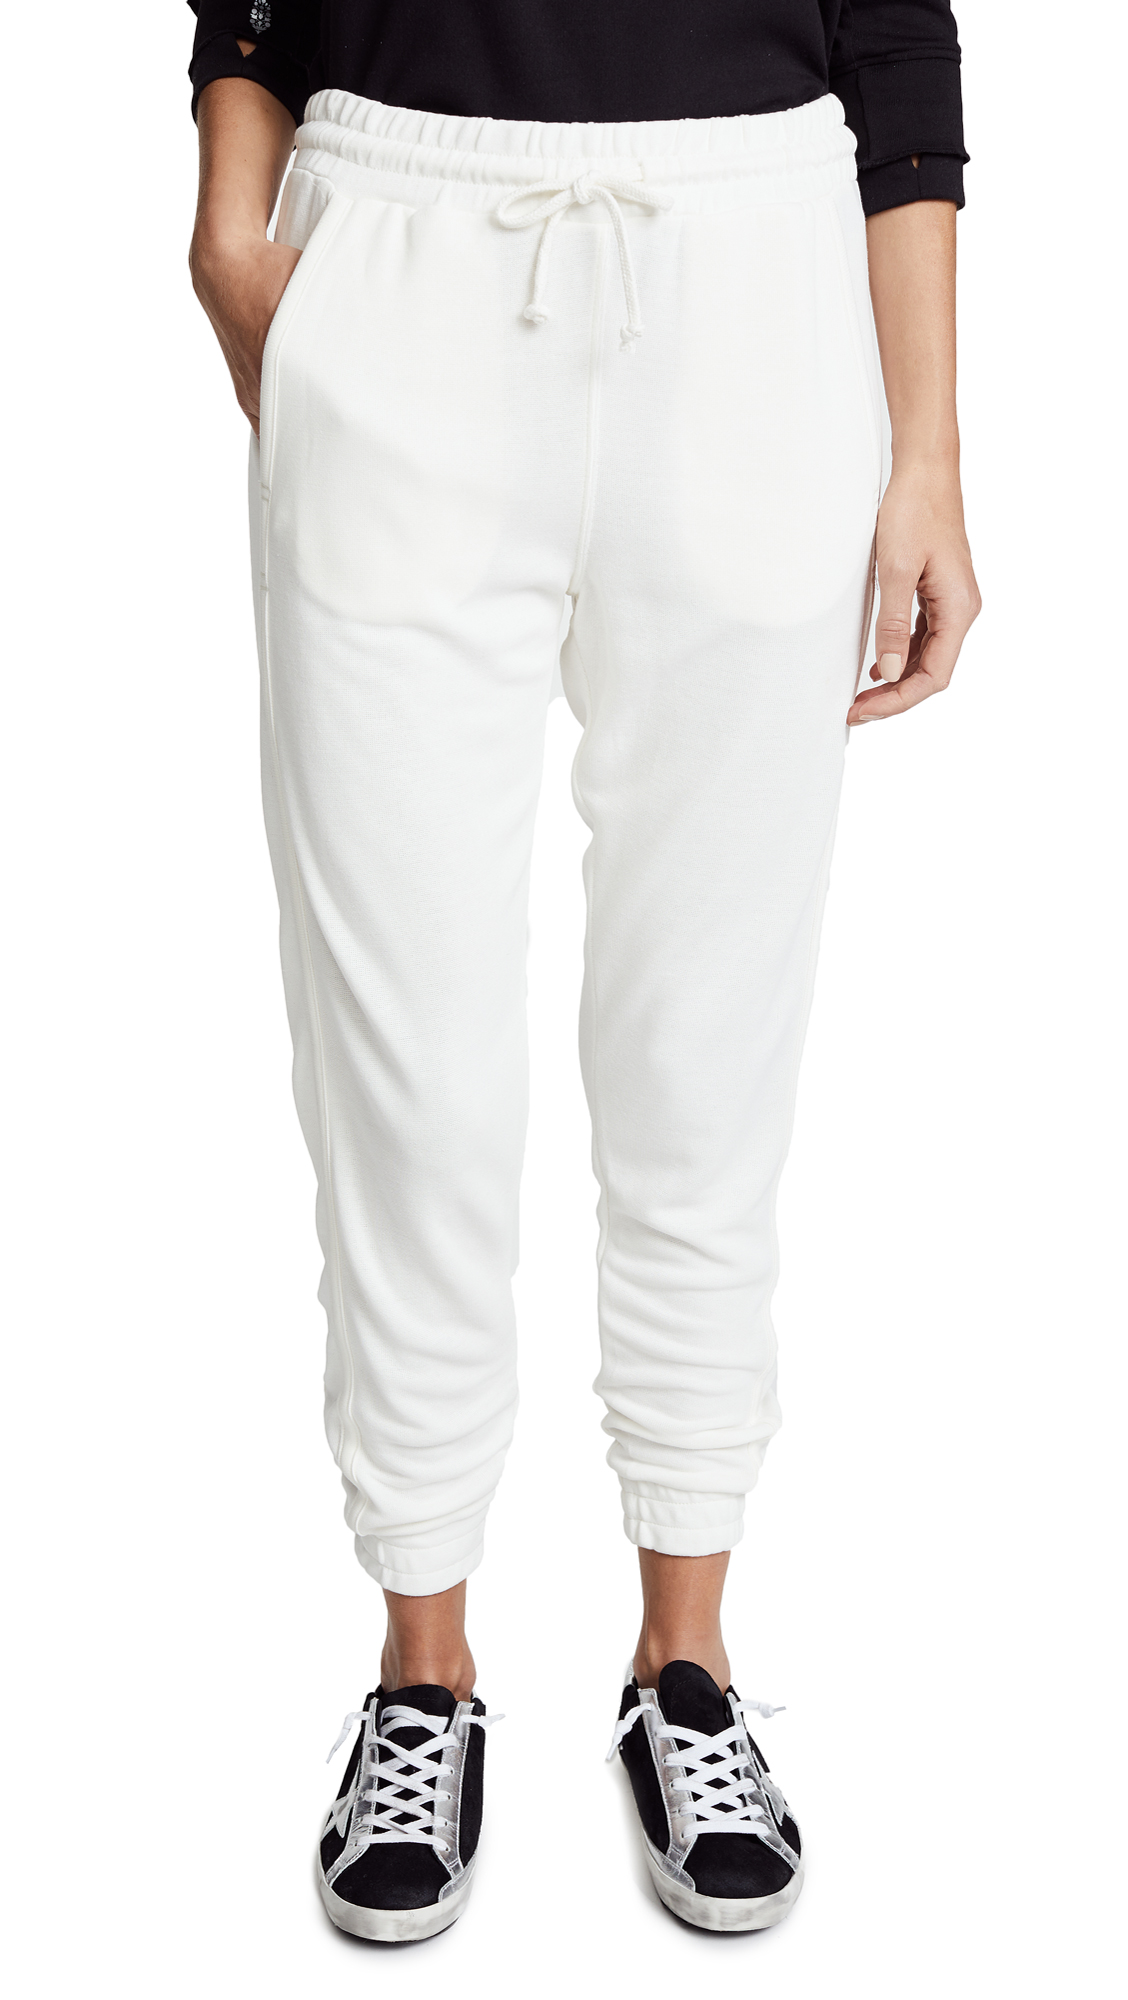 Free People Movement Back Into It Joggers - White